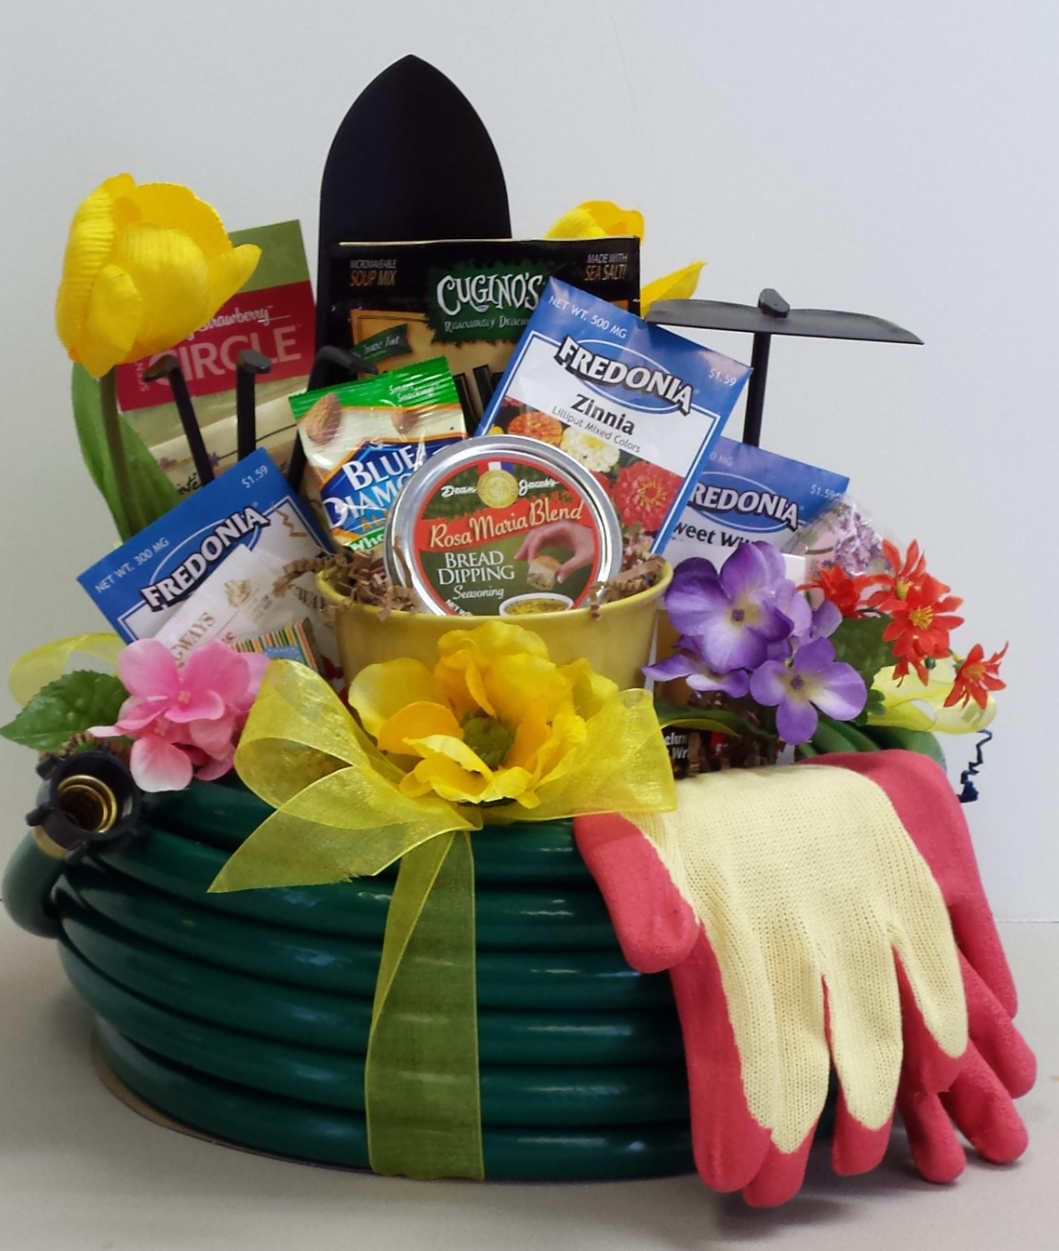 Gardening Gift Basket Ideas gardening gift ideas gift basket for a gardener gardening tools gloves seeds This 60 Garden Hose Basket Is Filled With Gardening Goodies Both For The Garden And